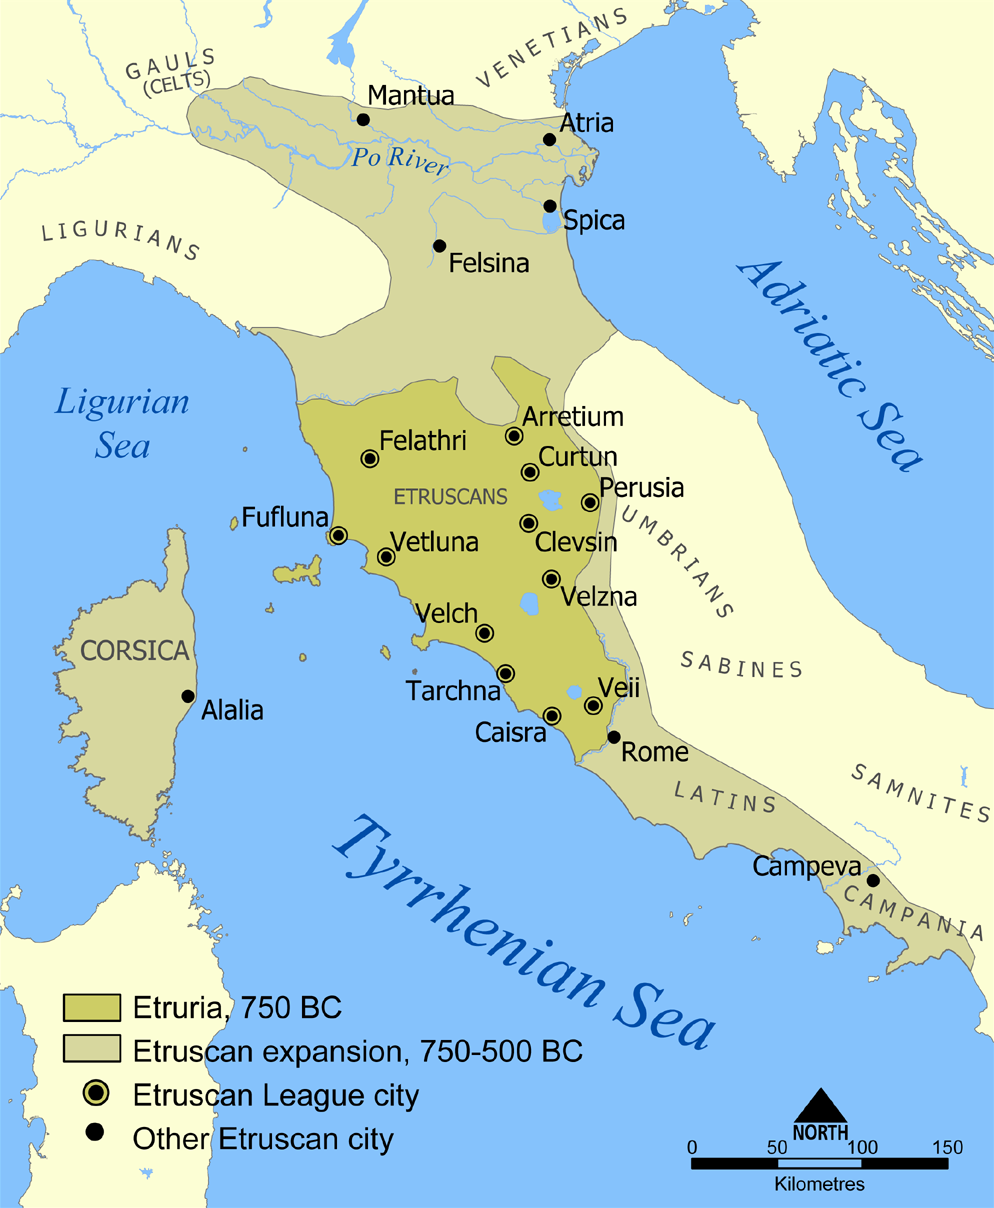 Meet the Etruscans. Linguistically, we know that they existed...and that's about it.